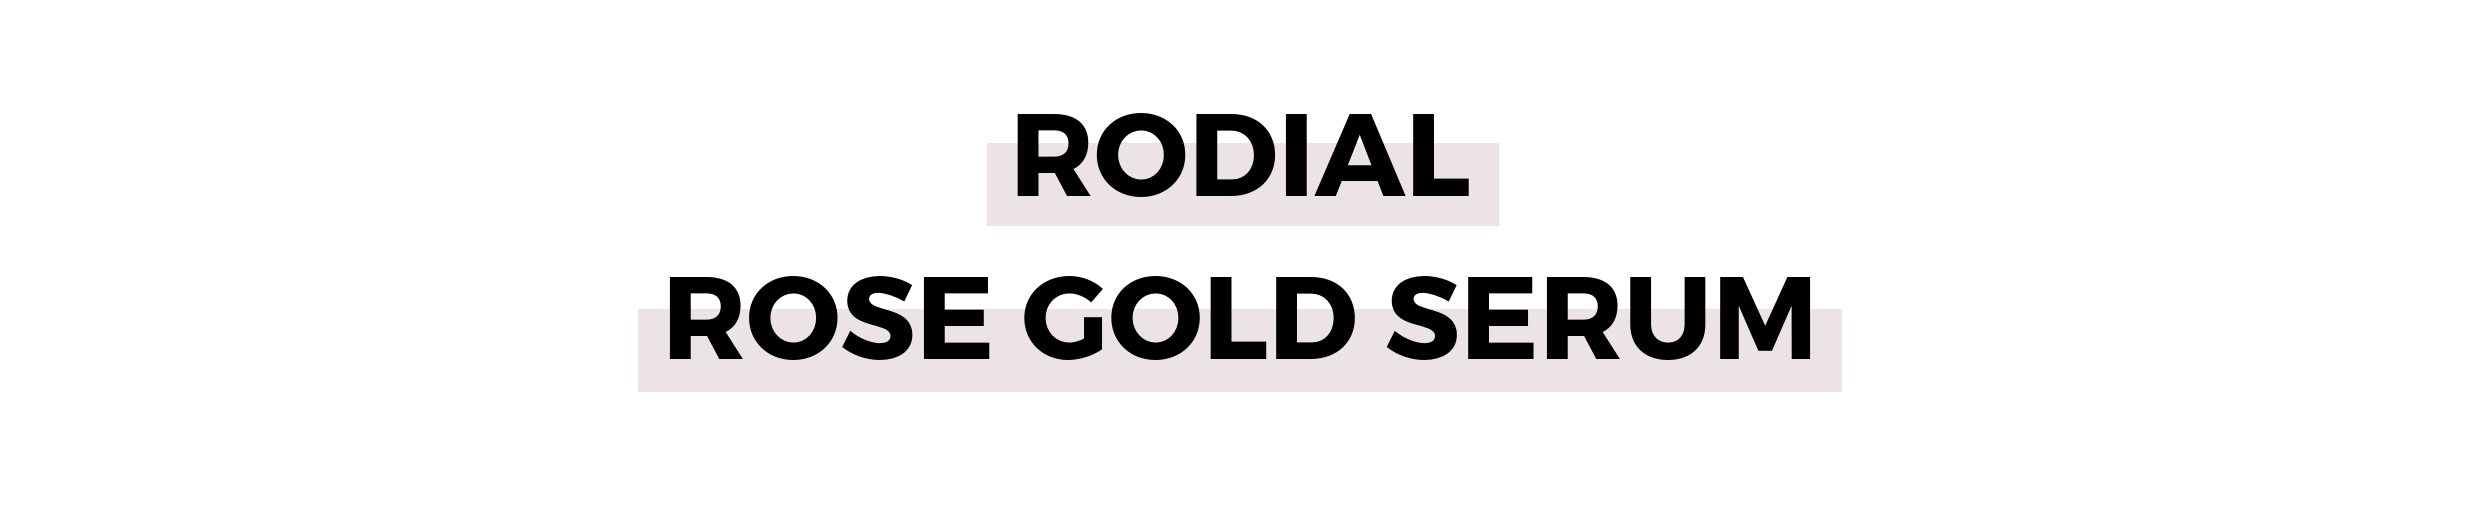 RODIAL ROSE GOLD SERUM.png